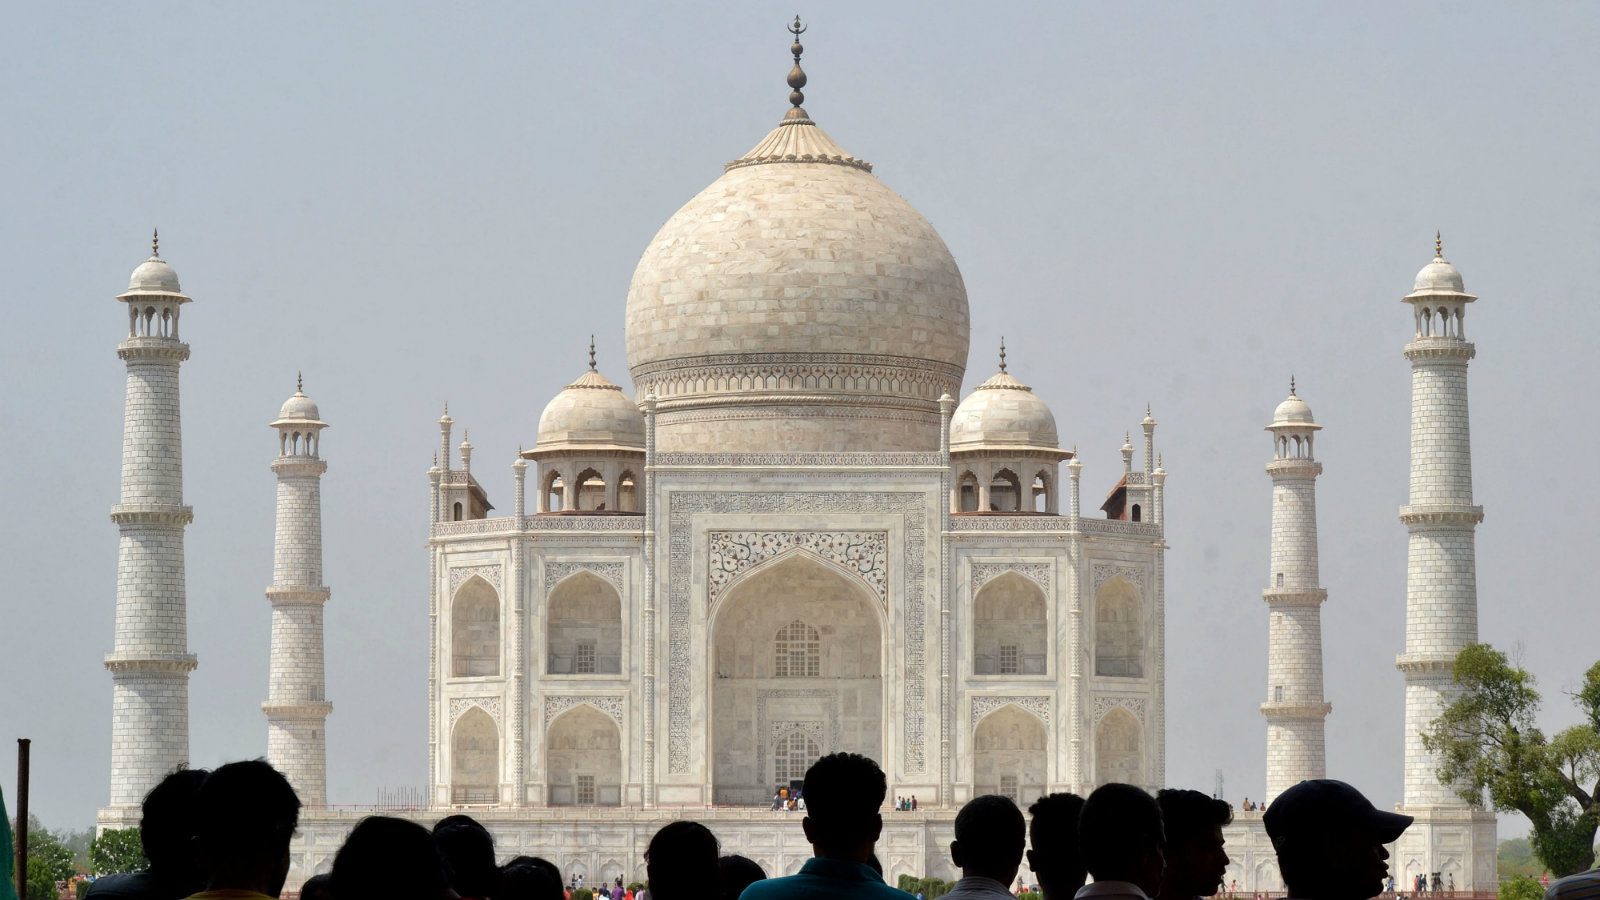 A general view of the India's iconic Taj Mahal in Agra, India, 02 May 2018. According to news reports, Indian top court asked the Indian government to seek foreign help to fix the changing color of the ivory-white marble mausoleum that had turned yellow and was now turning brown and green.